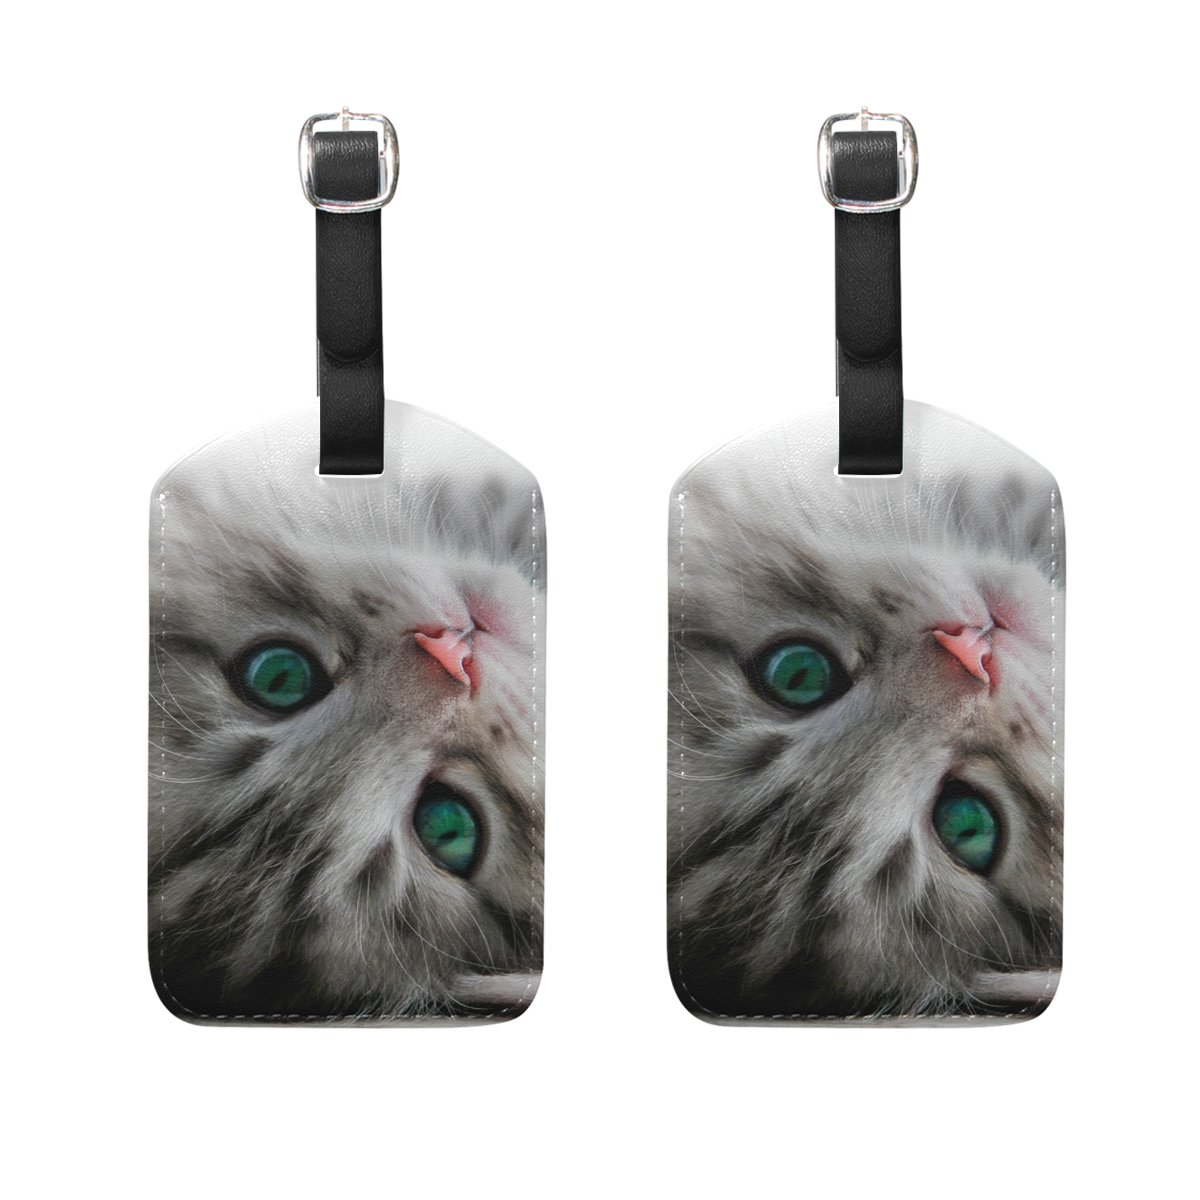 COOSUN Kitten Lays Isolated Luggage Tags Travel Labels Tag Name Card Holder for Baggage Suitcase Bag Backpacks, 2 PCS